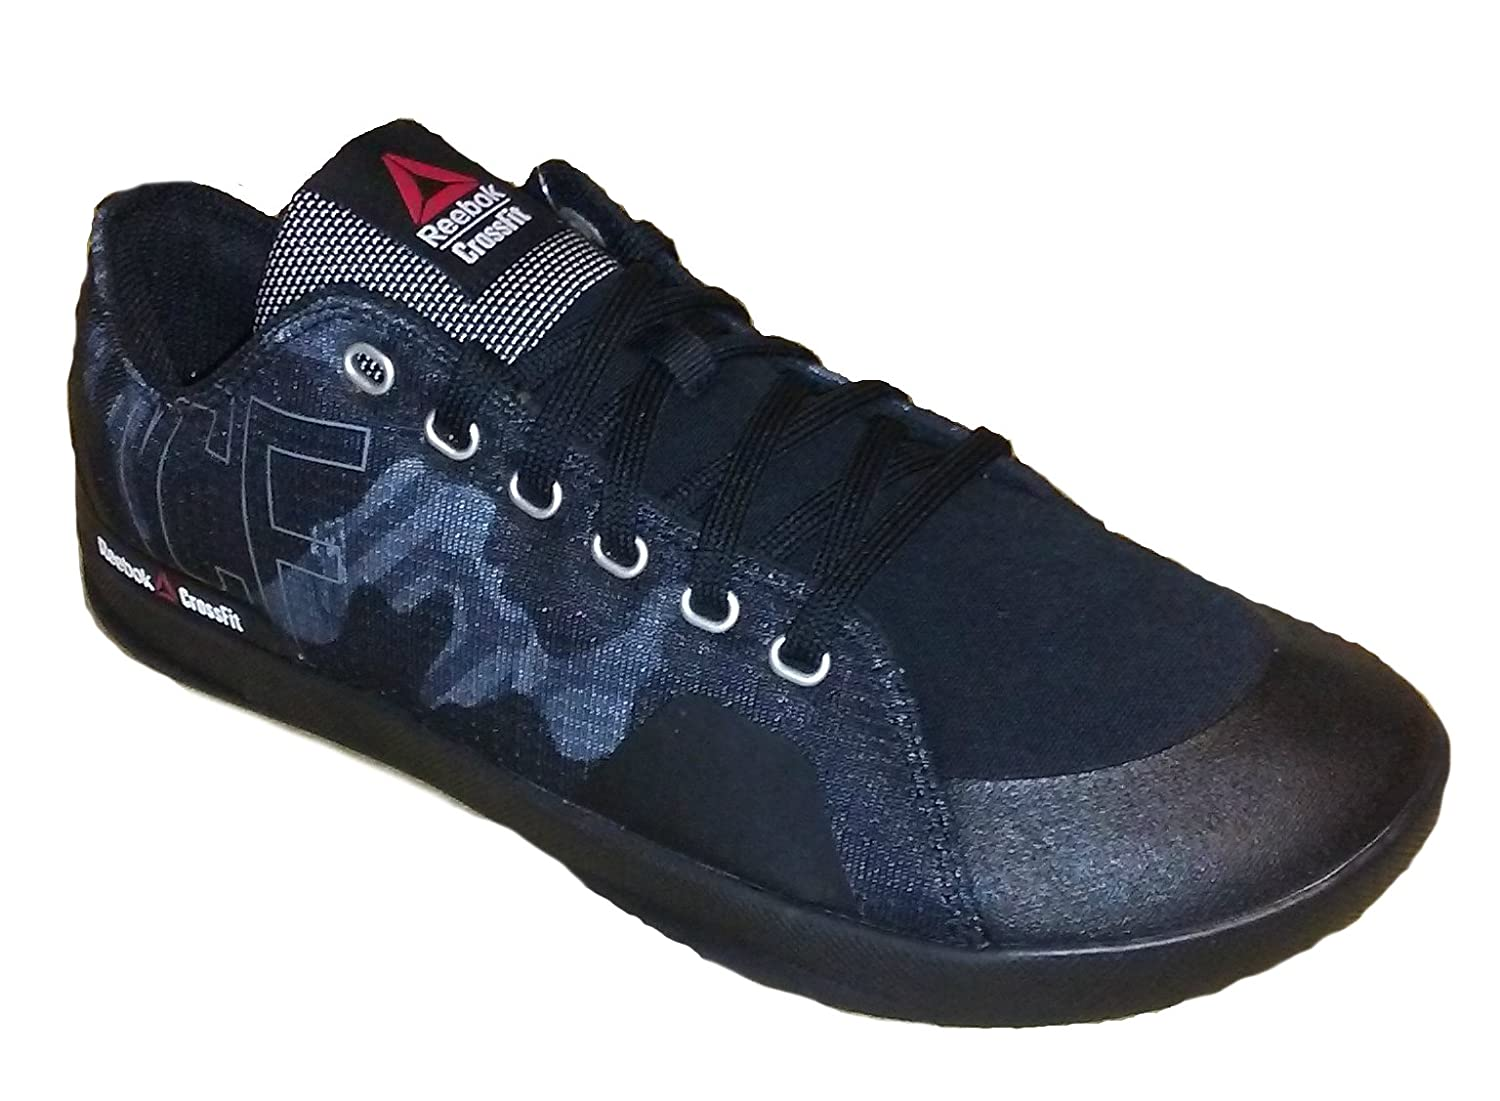 540a50400ad338 Reebok Mens Crossfit Lite Lo TR 2.0 GR Fitness Shoe Black Alloy White